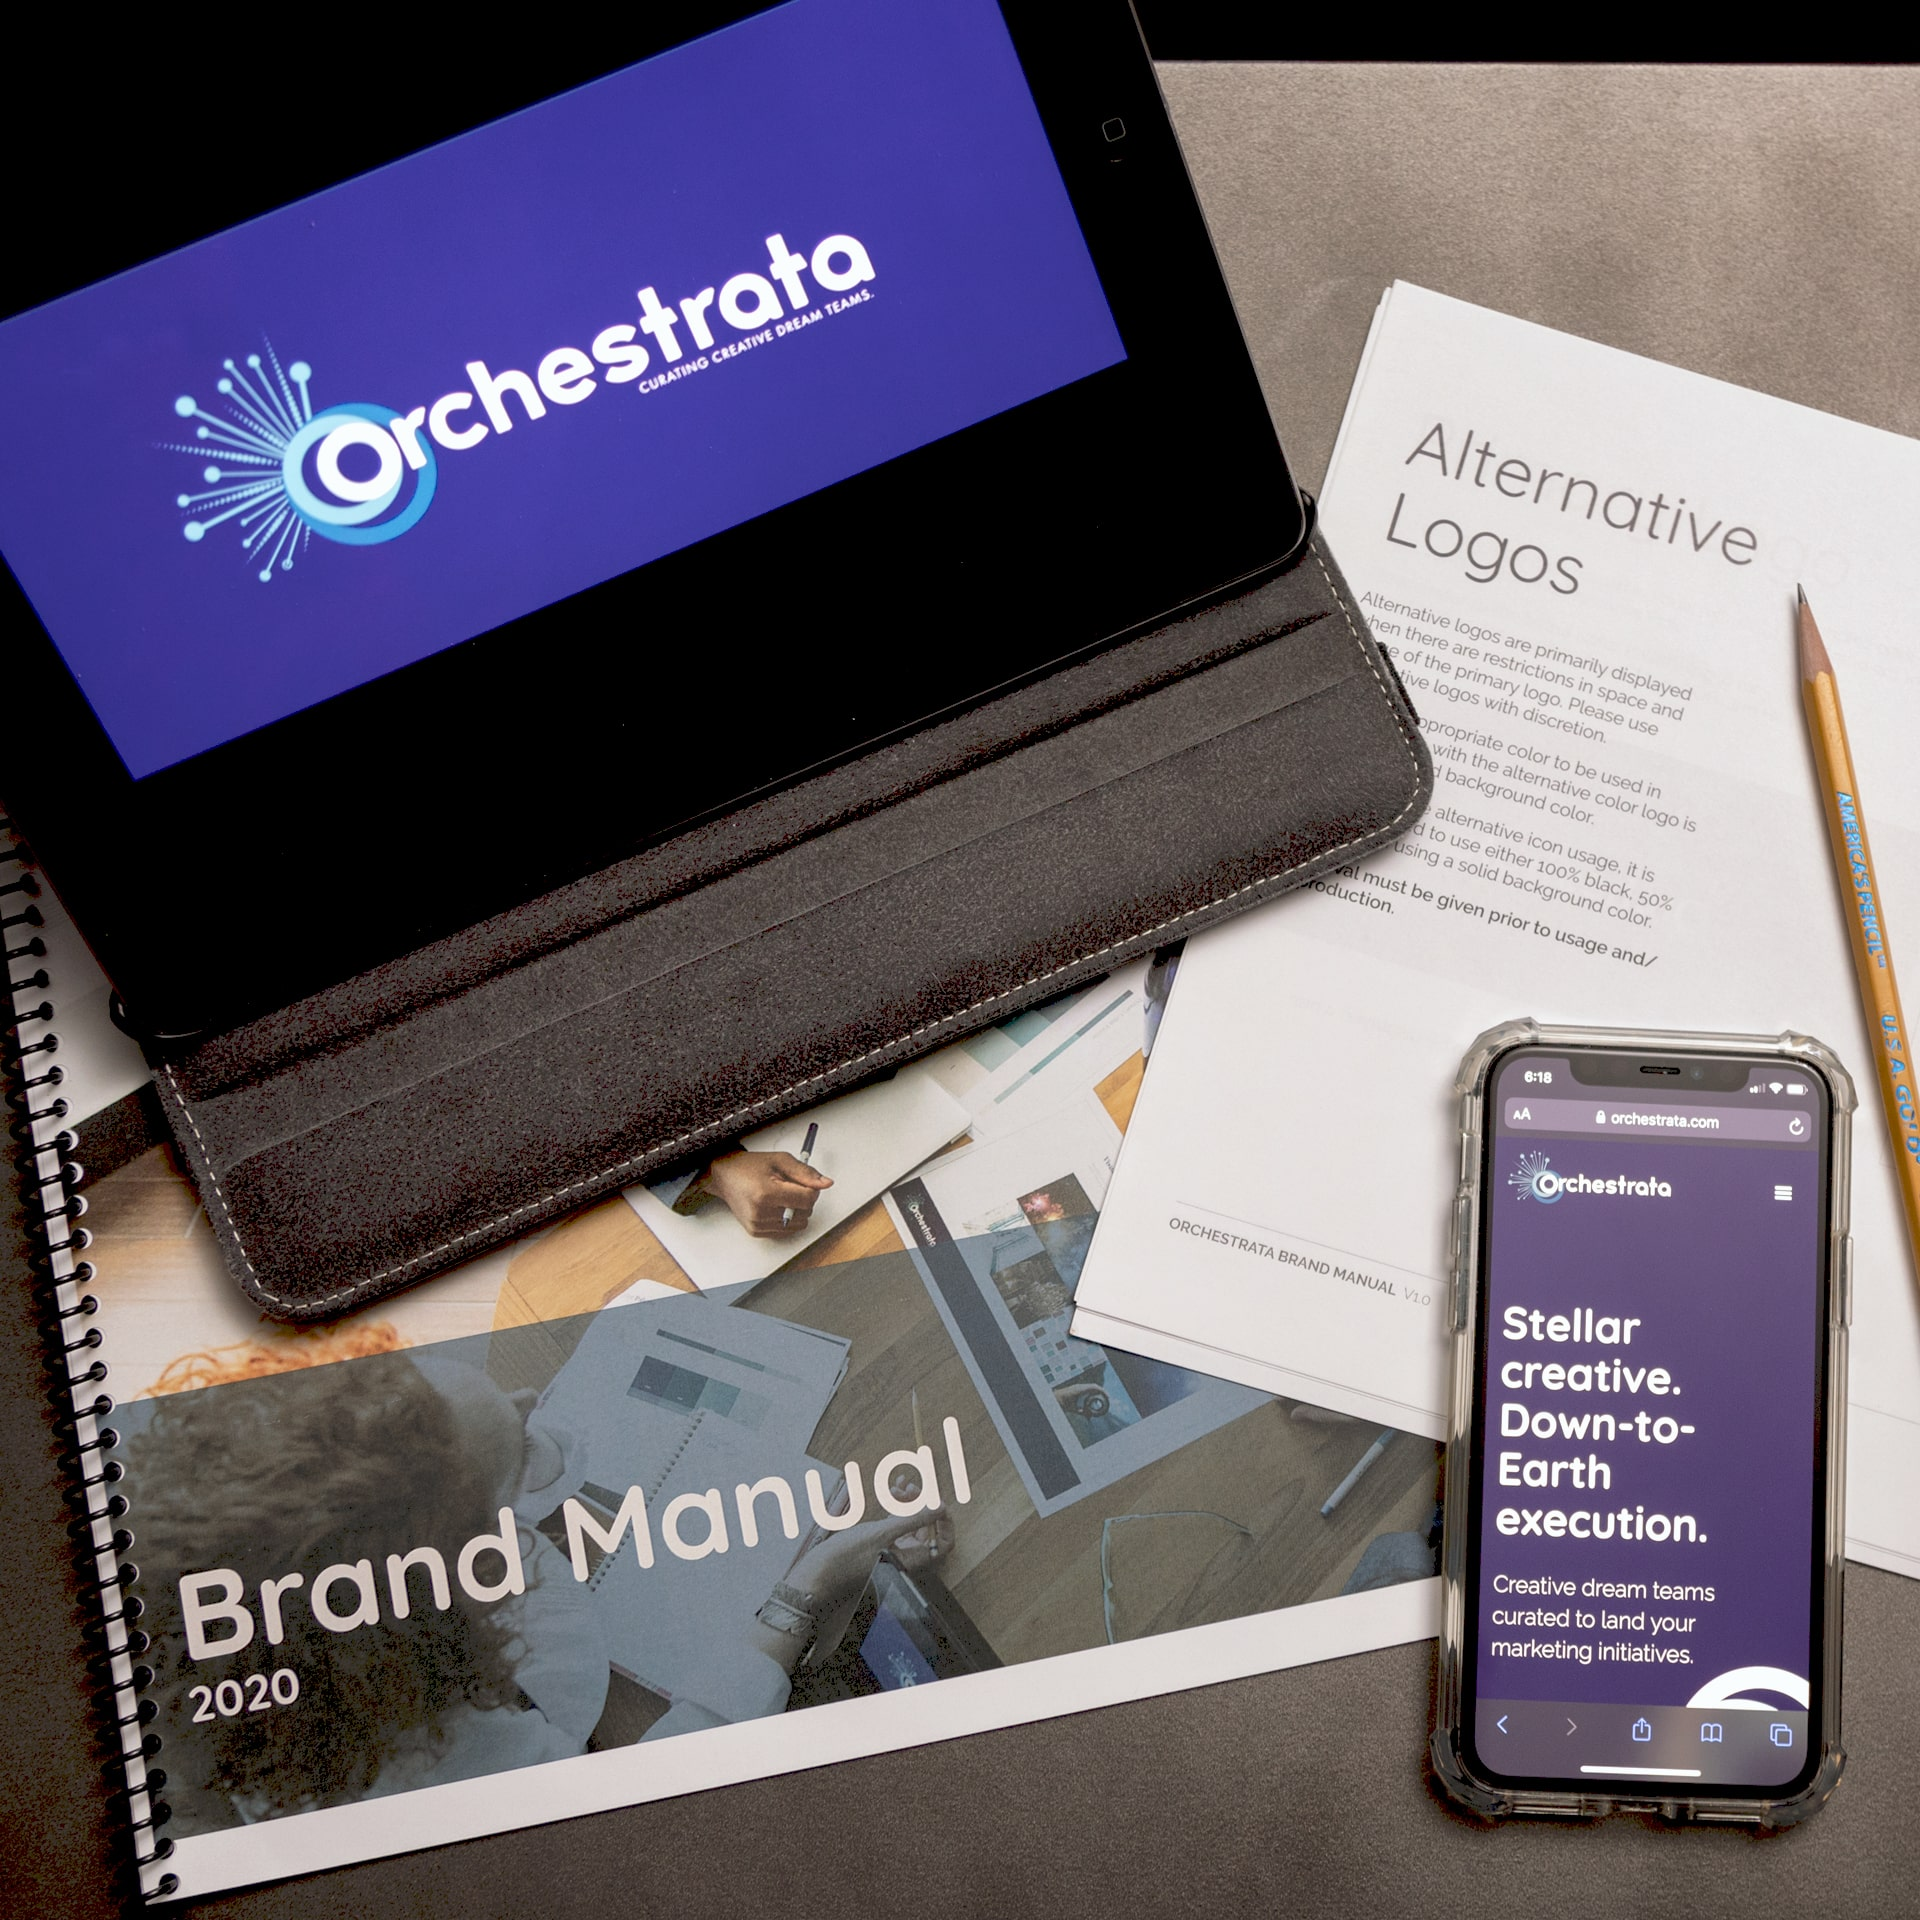 A composed shot of various bluish brand collateral for Orchestrata, including a brand manual, tablet, and website on a mobile phone